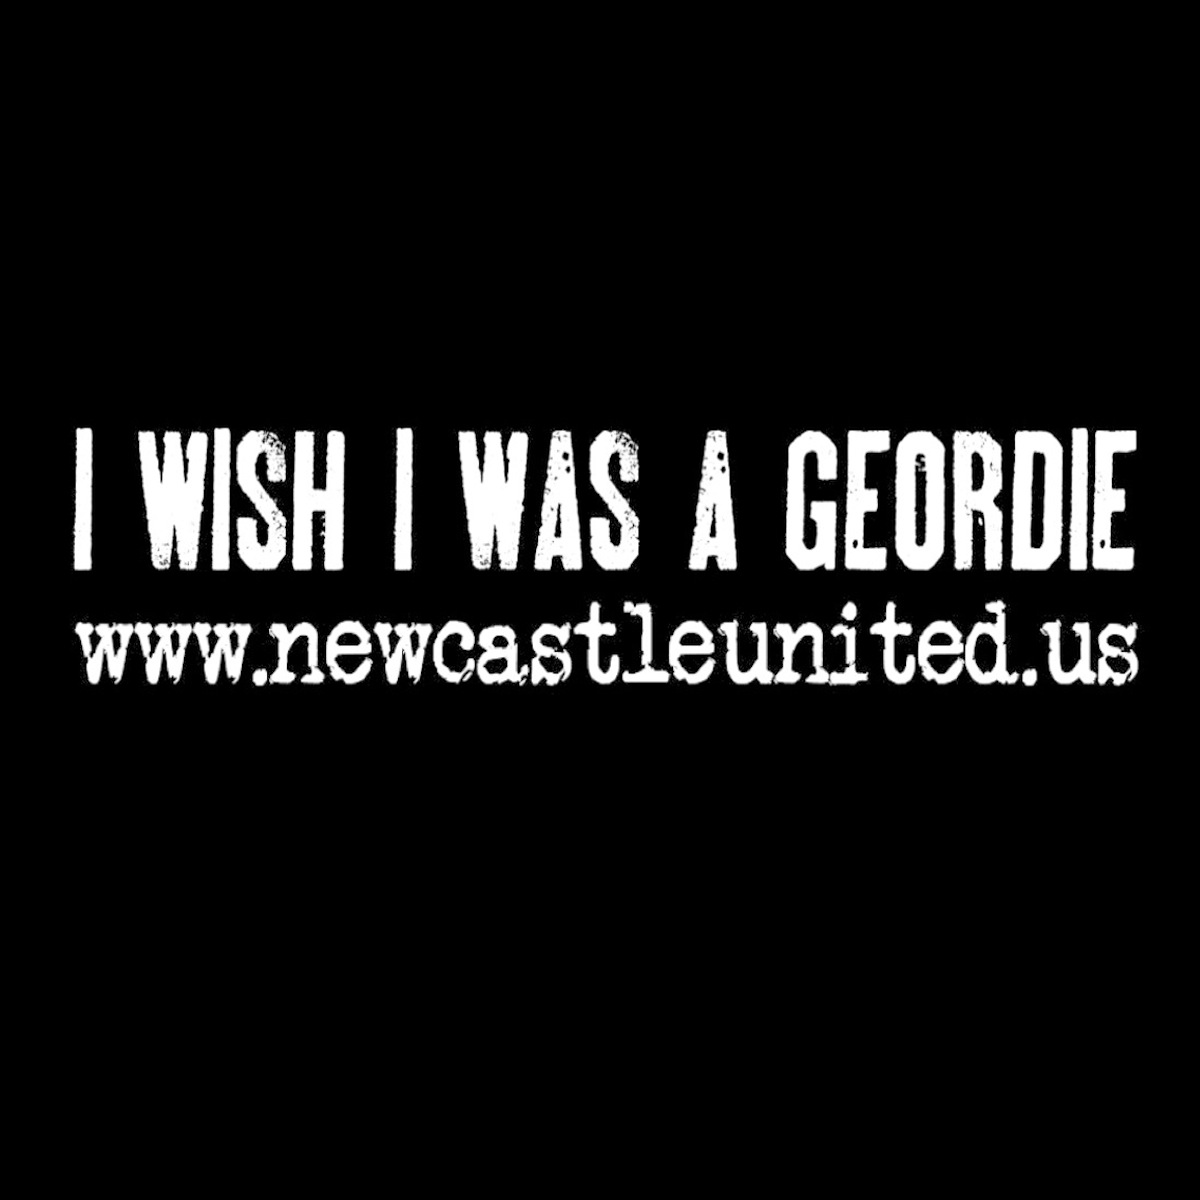 I Wish I Was A Geordie - The Blog of Newcastle United in the US